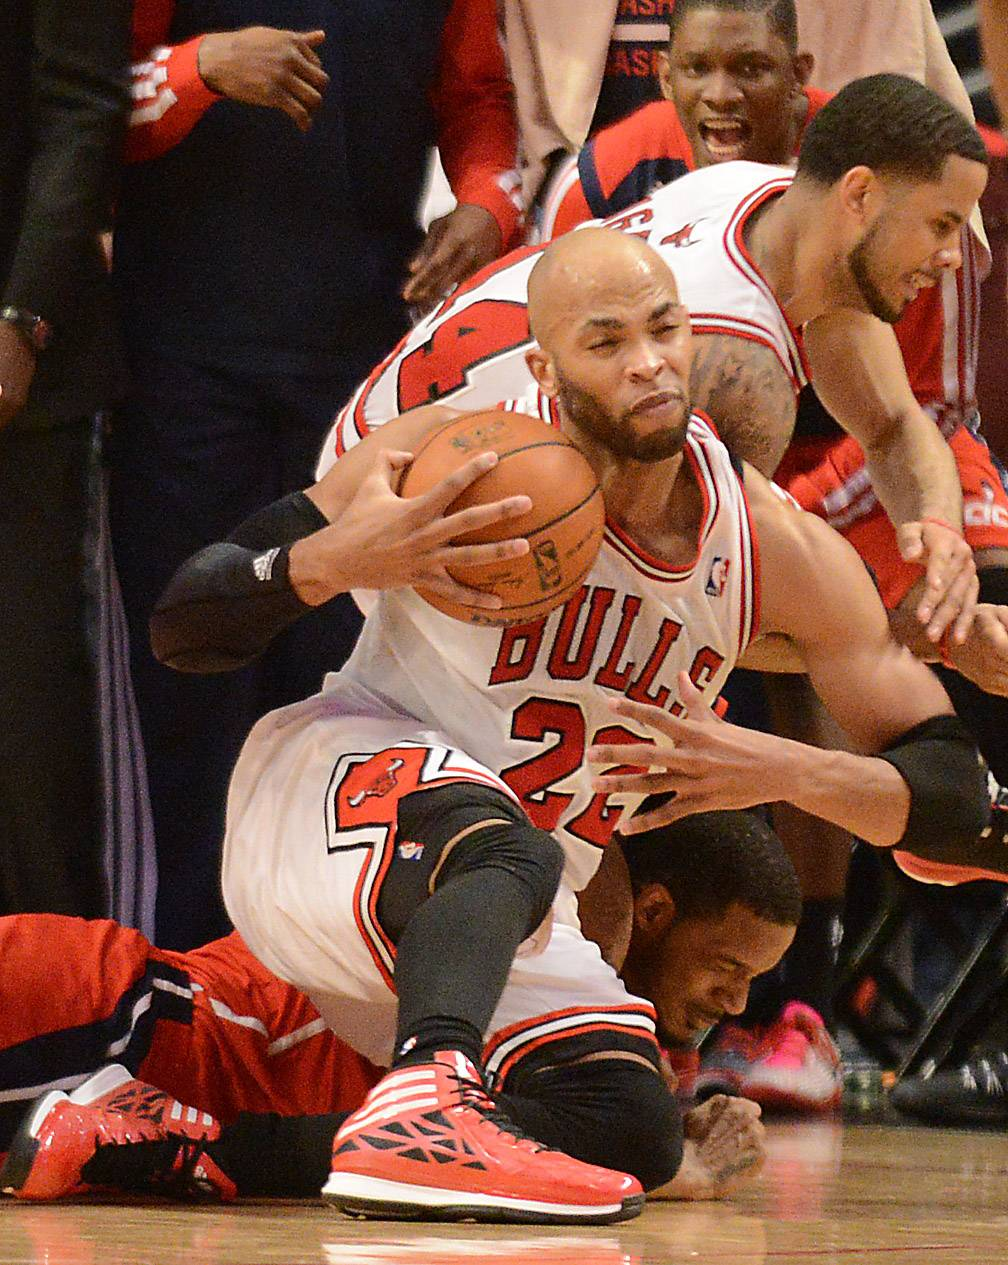 The Bulls' Taj Gibson (22) said that he called timeout three times after he went to the ground in a scramble for the ball in Tuesday's game. The official ruled it was a jump ball, which the Bulls lost.